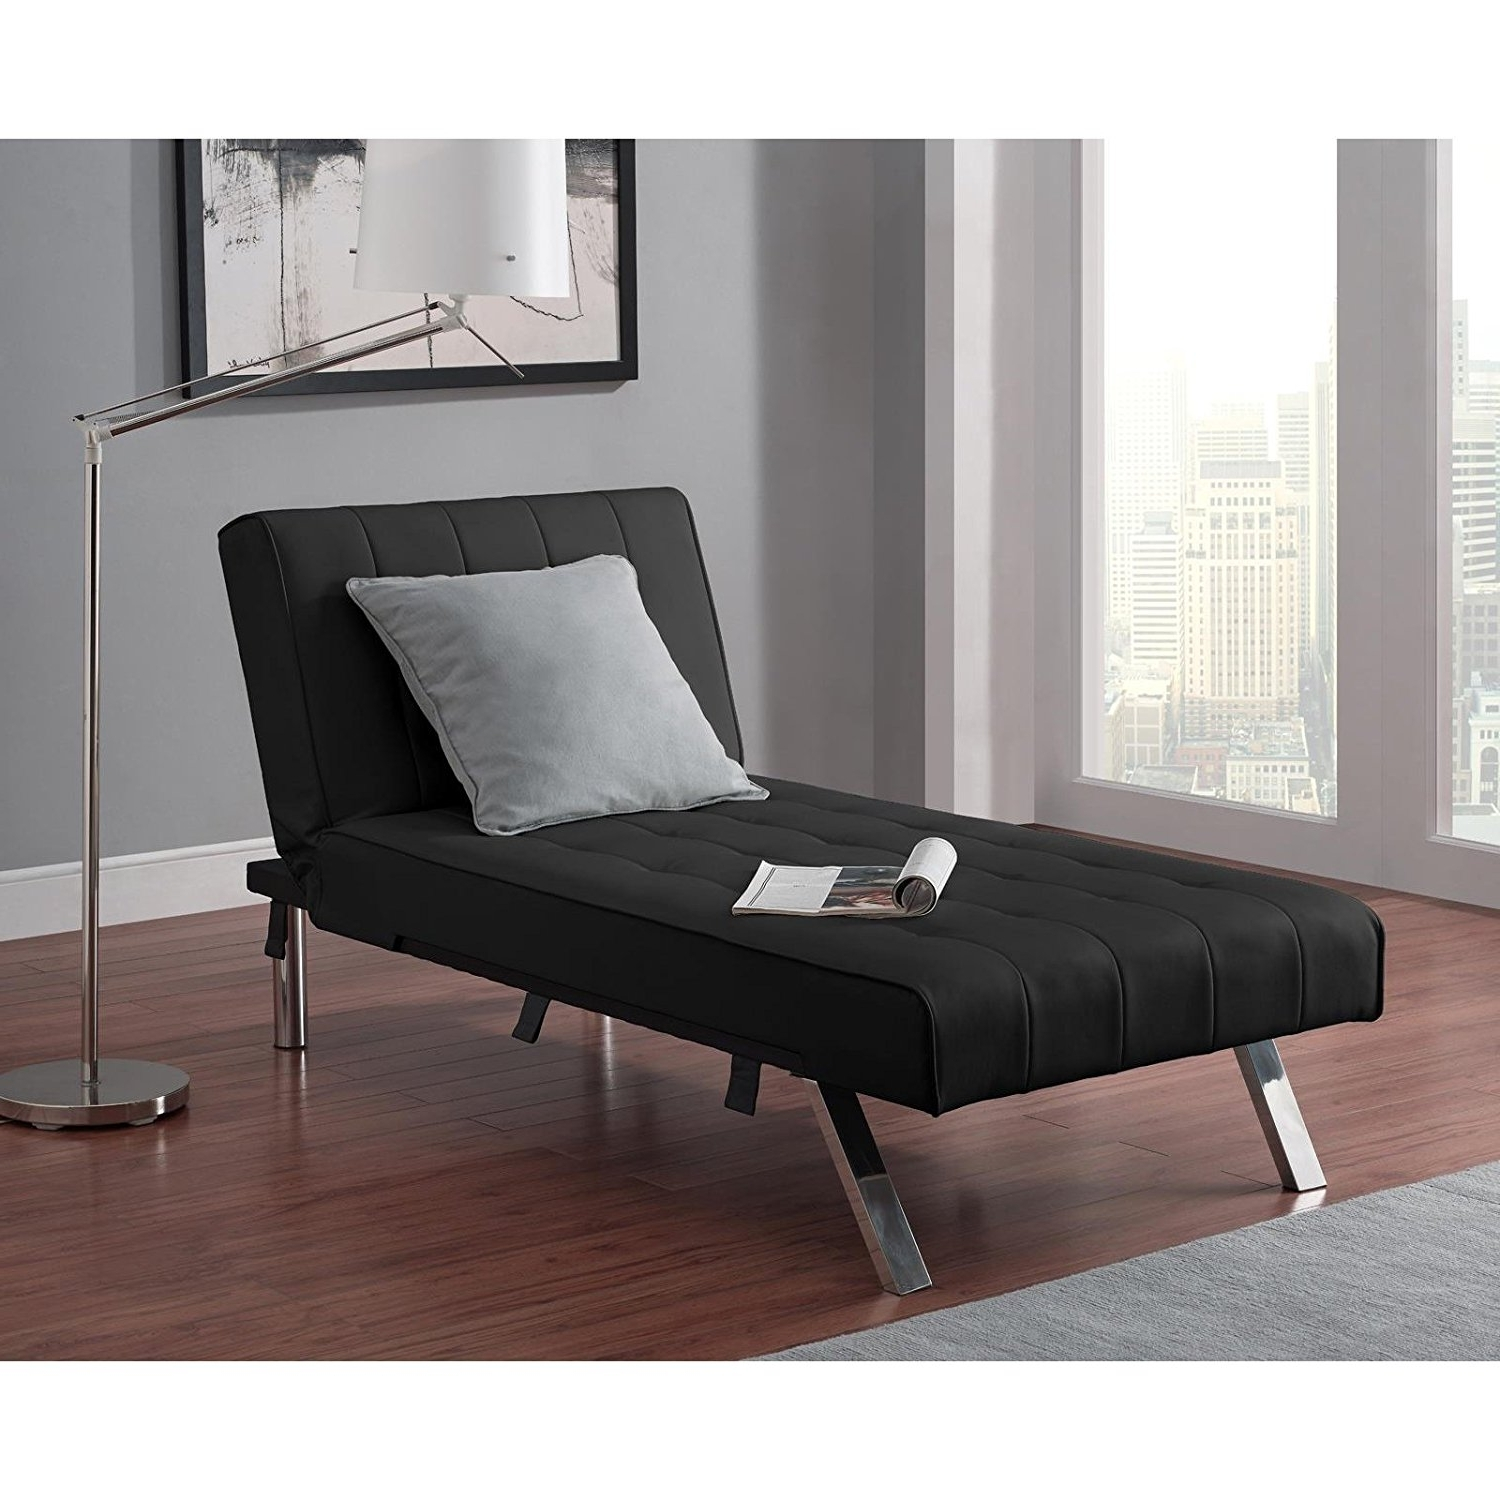 Convertible Chaises Inside Well Known Amazon: Emily Futon With Chaise Lounger Super Bonus Set Black (View 2 of 15)